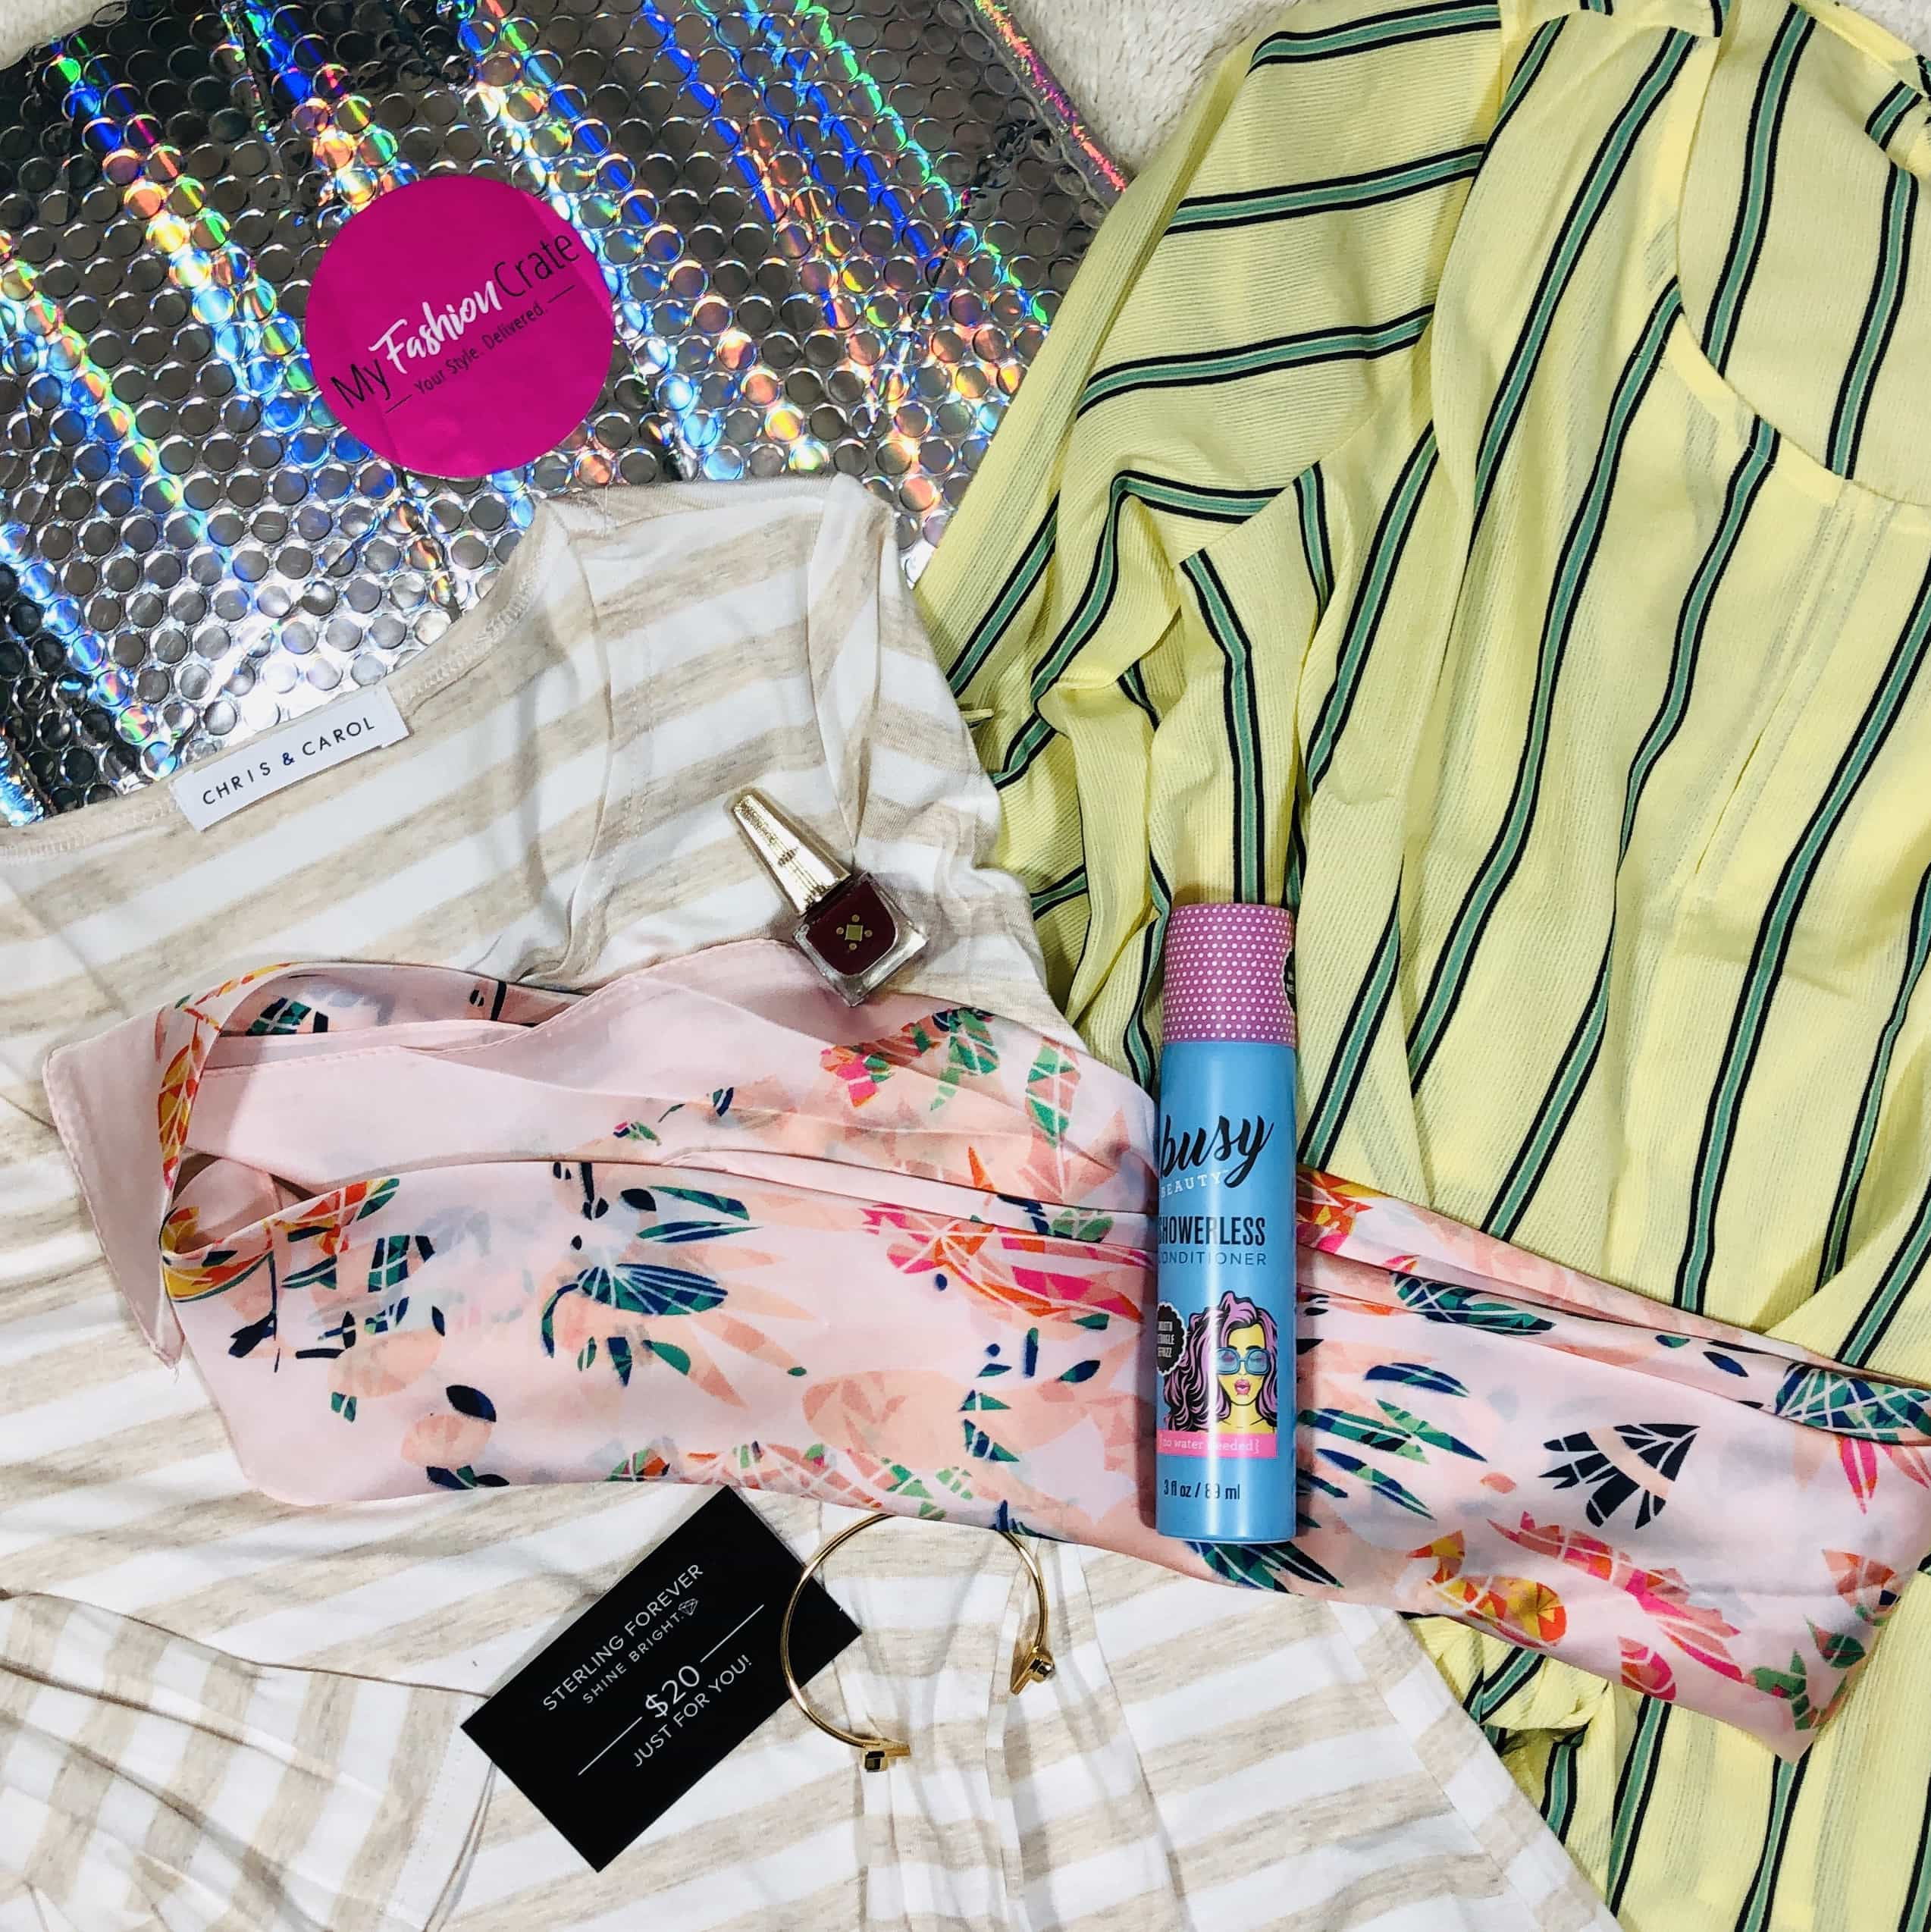 My Fashion Crate June 2019 Subscription Box Review